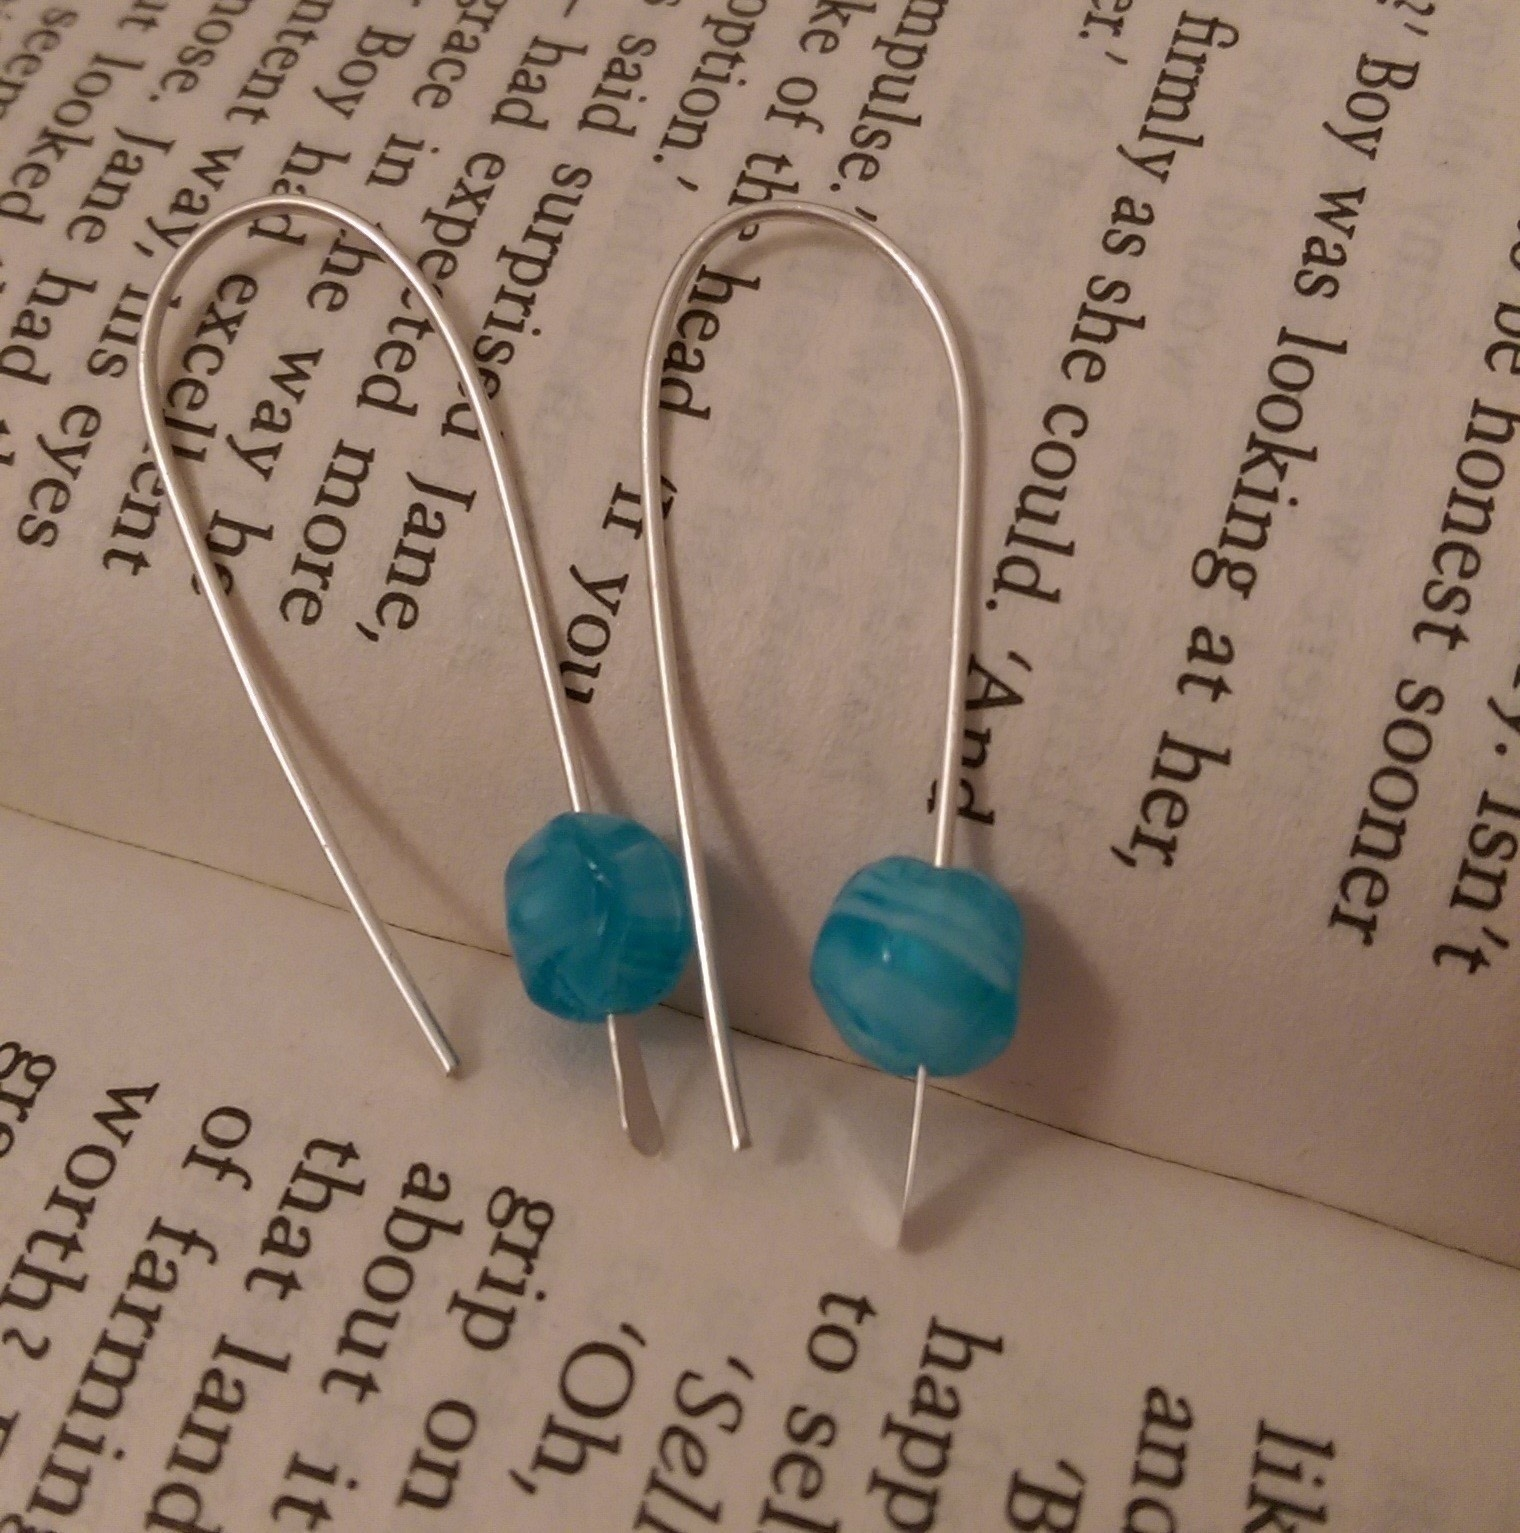 A Great Way To Make Simple Earrings For Gift Free Tutorial With Pictures On